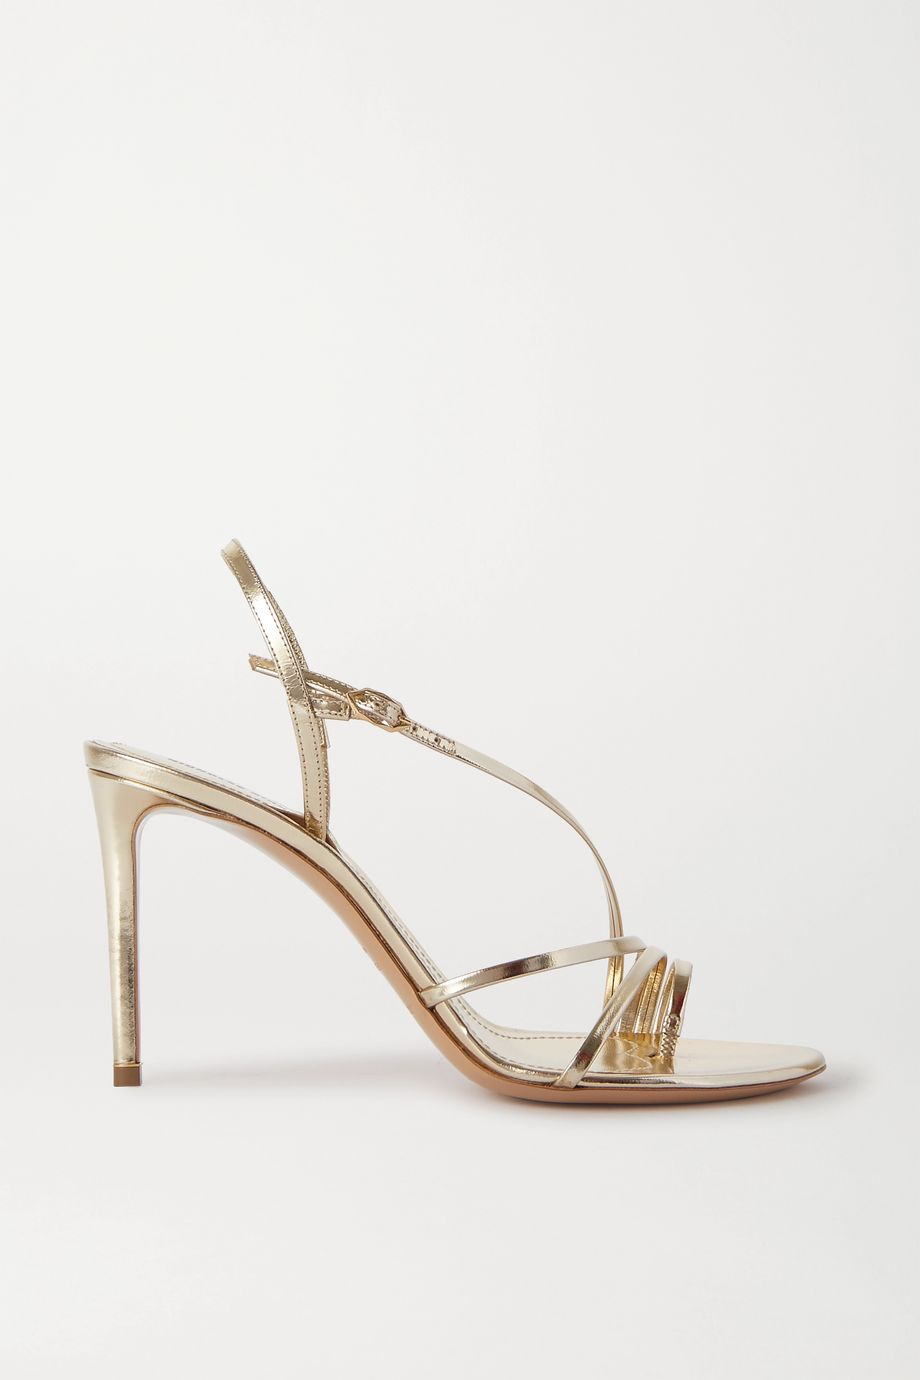 Nicholas Kirkwood Elements metallic leather slingback sandals